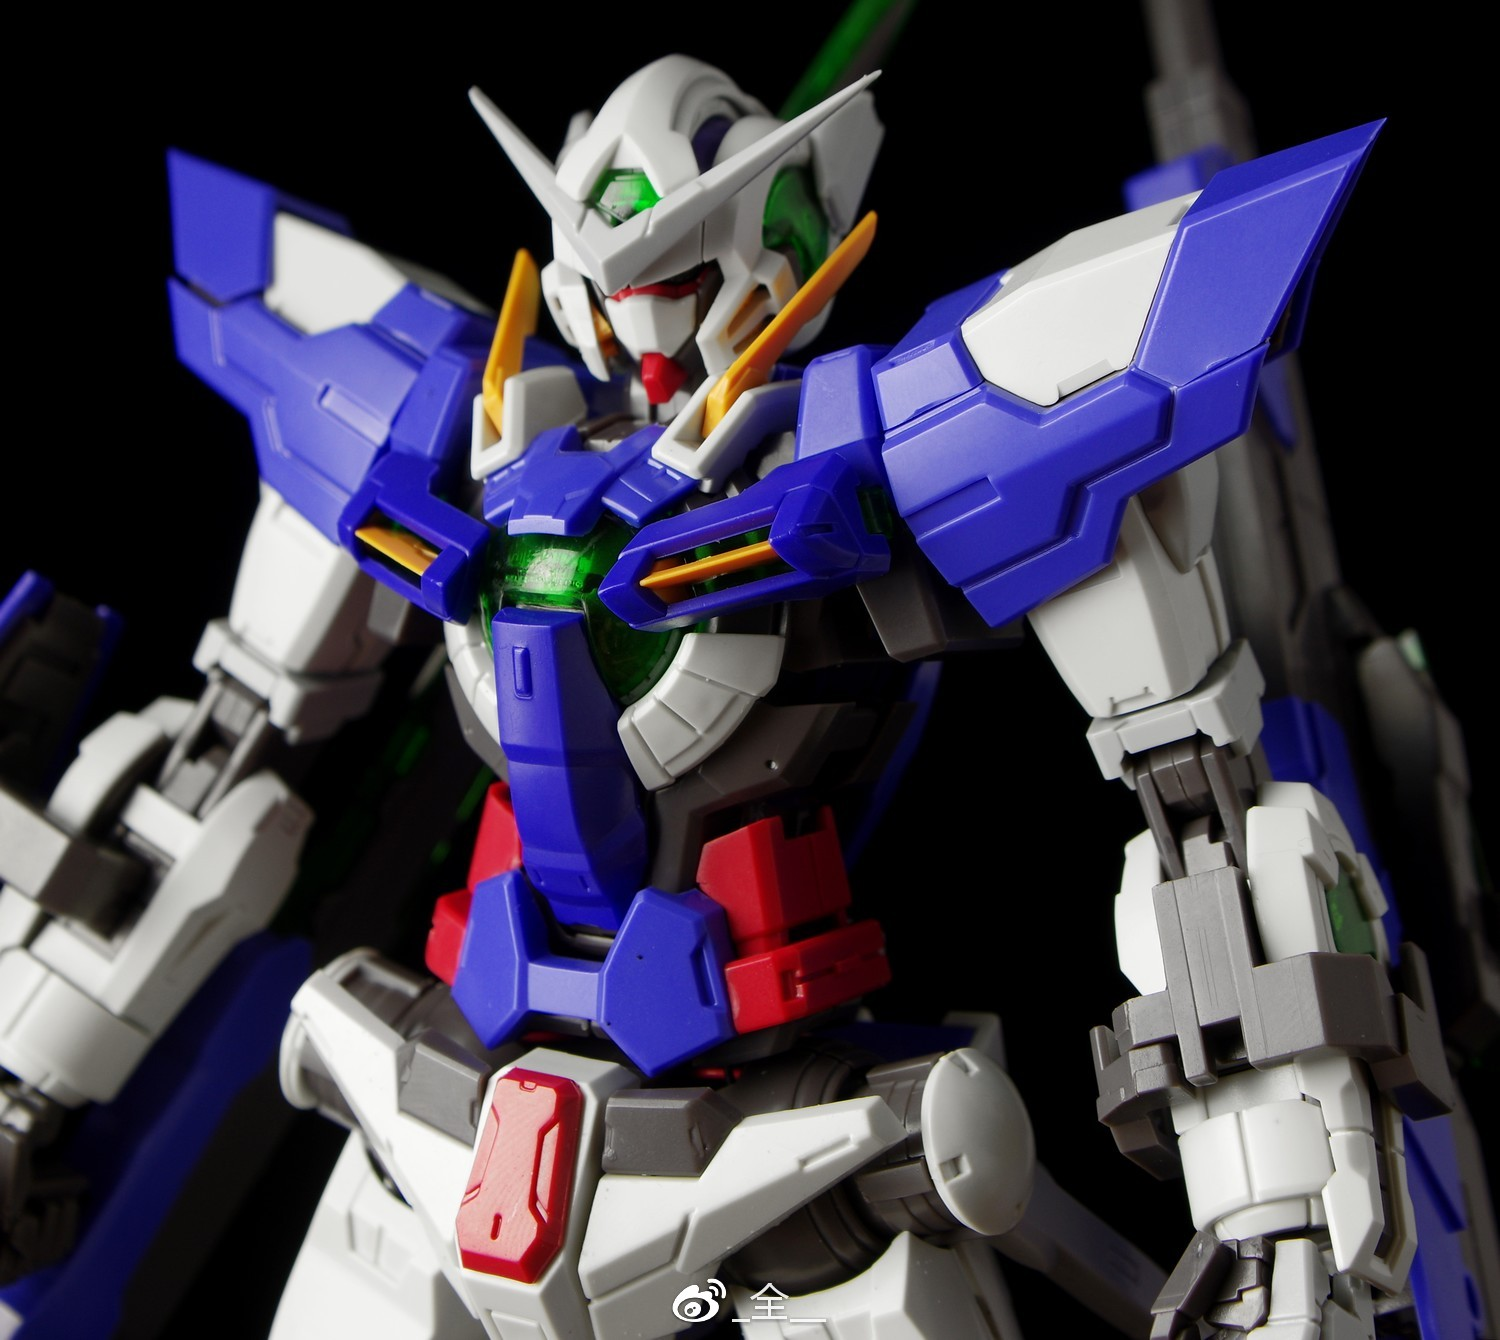 S269_mg_exia_led_hobby_star_inask_096.jpg